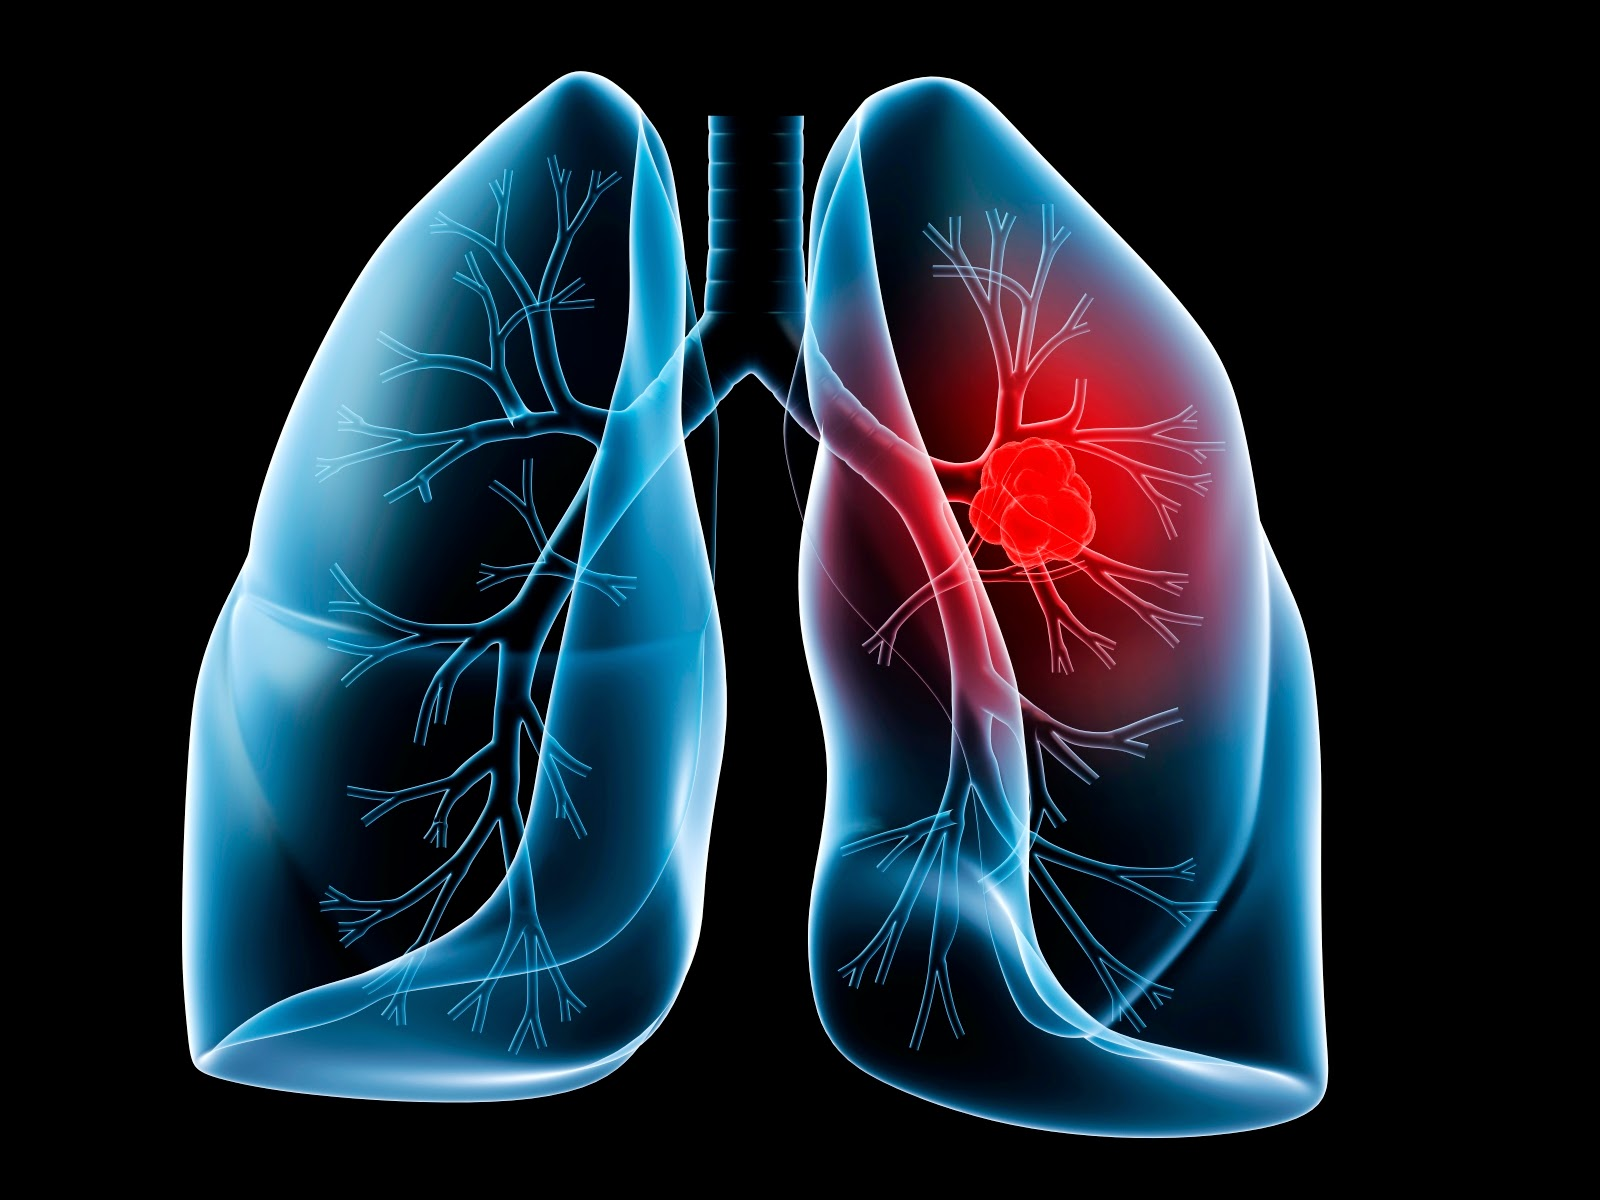 Researchers Discover New Genetic Anomalies In Lung Cancer